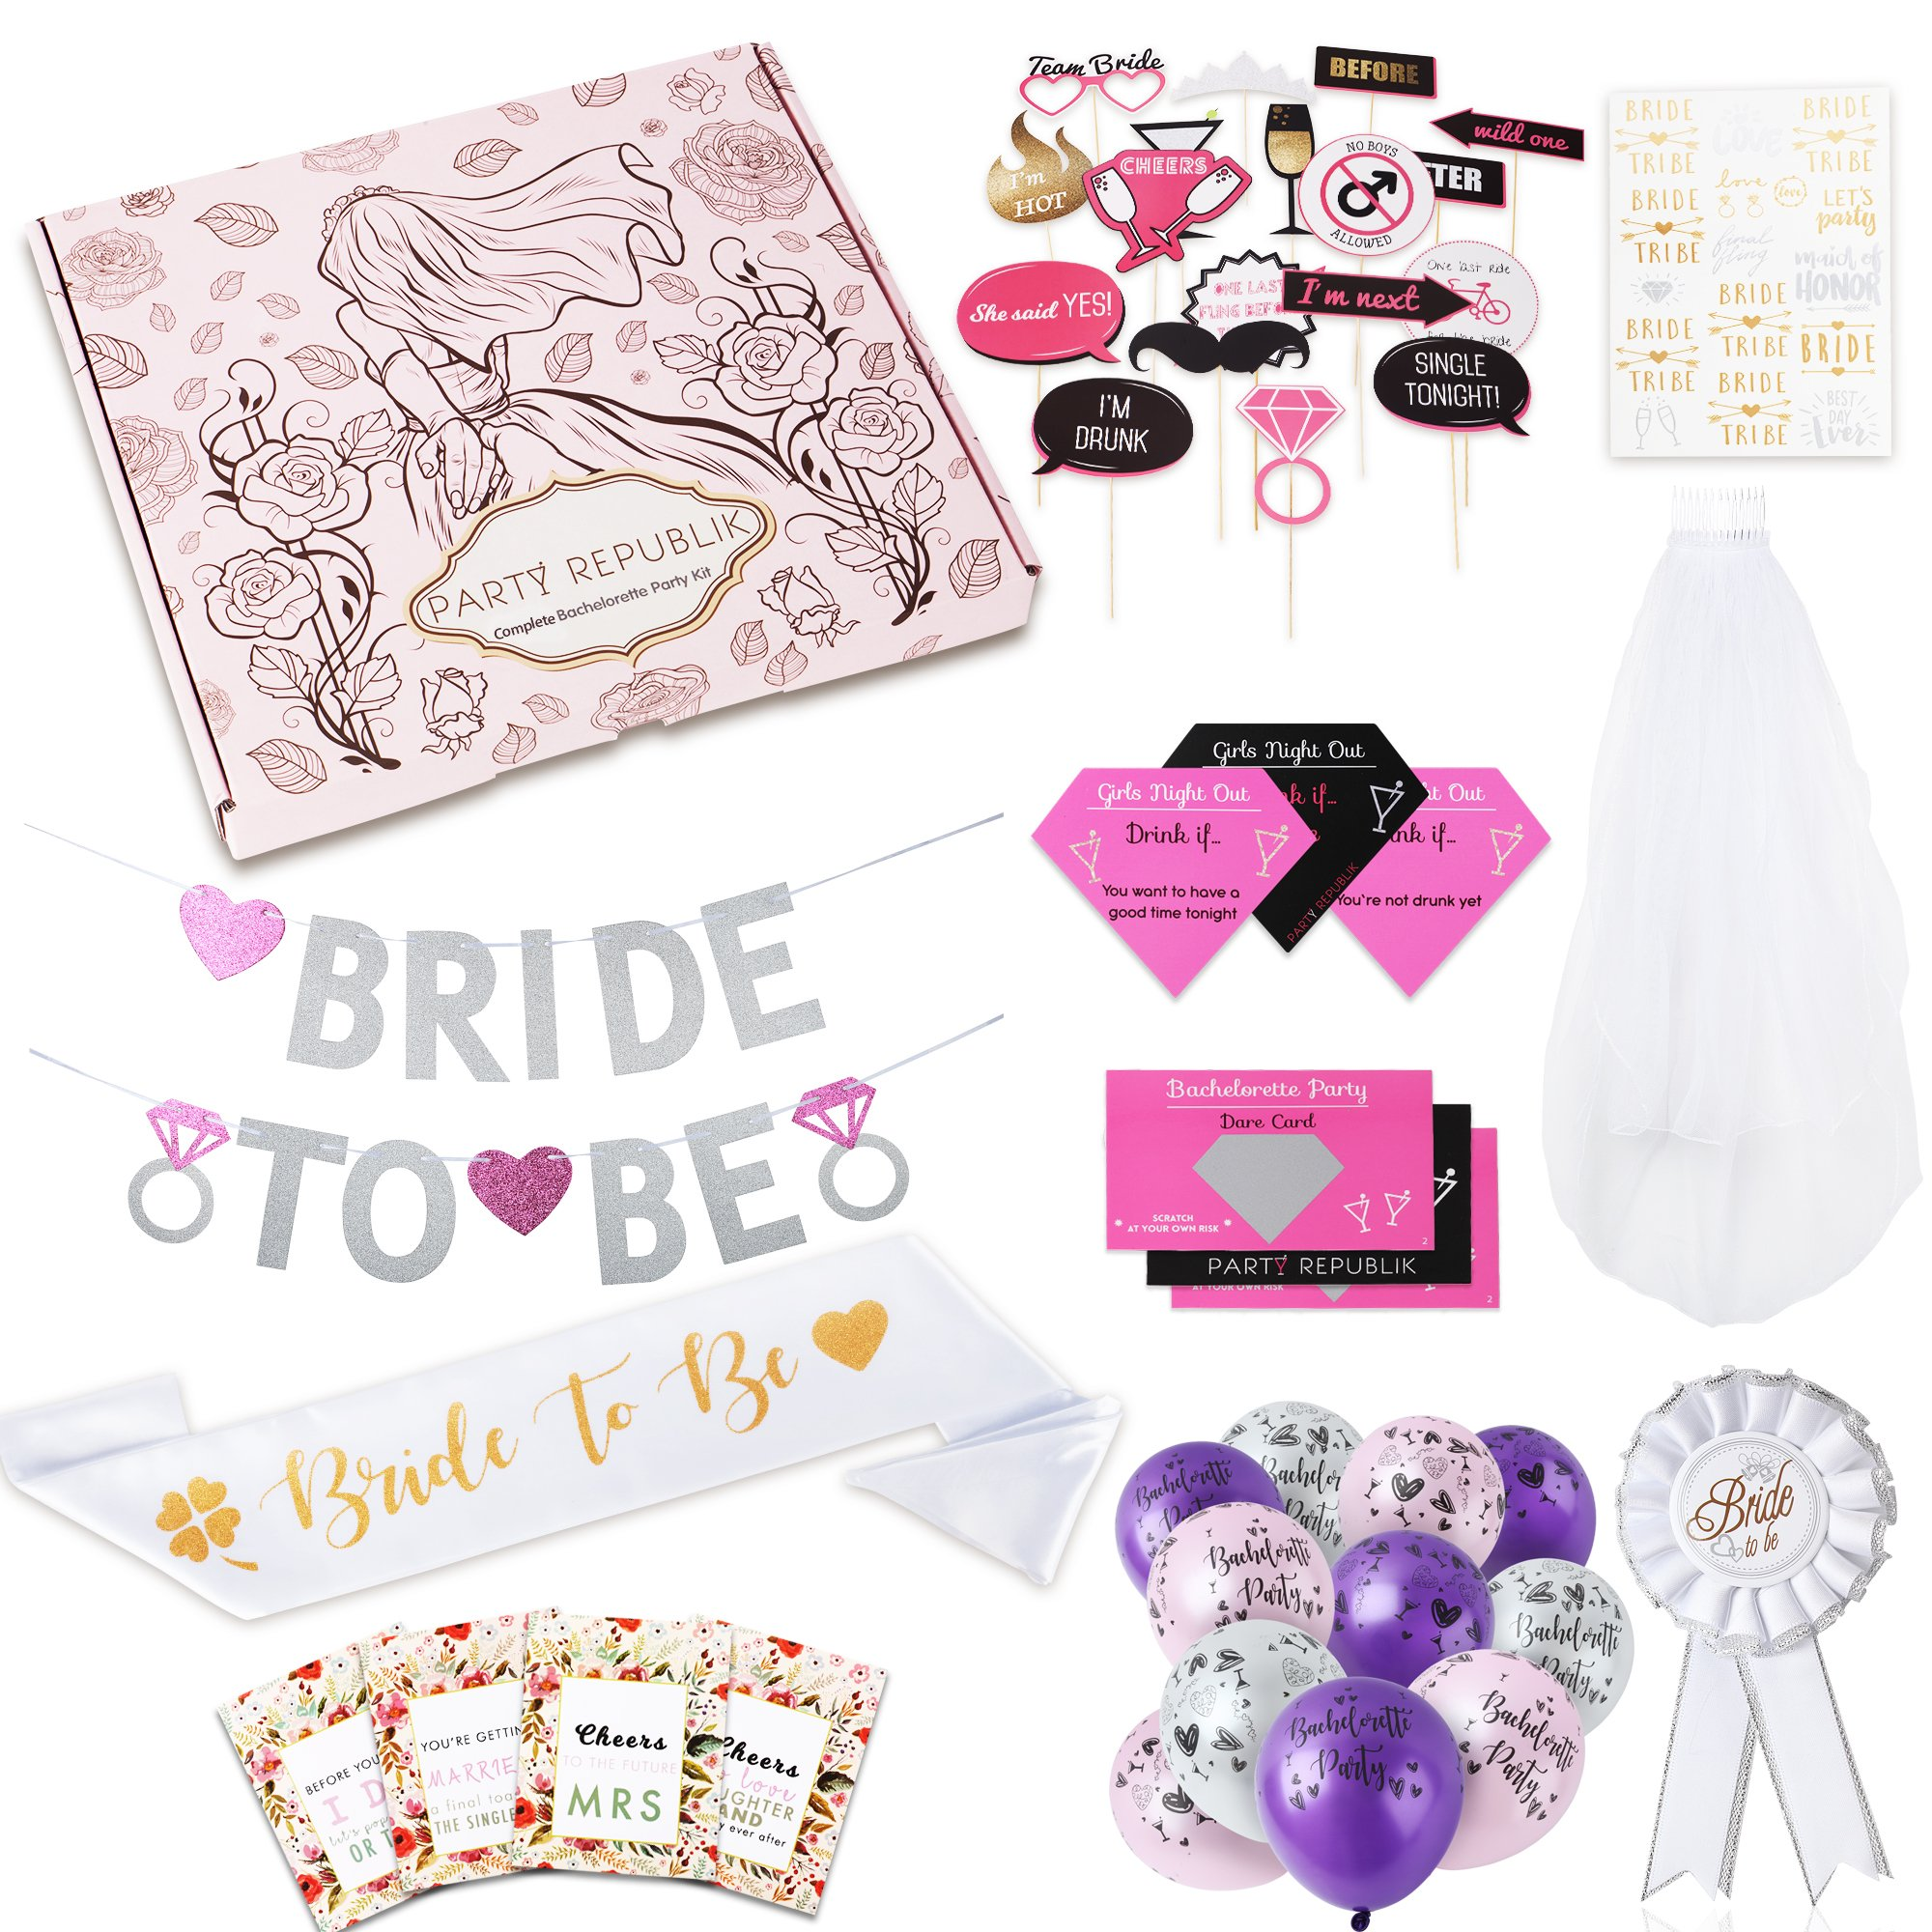 Complete Bachelorette Party Kit (124-Pieces) - Saving You Time and Money - Includes Bachelorette Party Games, Bridal Shower Decorations, Photobooth Props, Banner, Bride to Be Sash, Pin, Veil and Flash